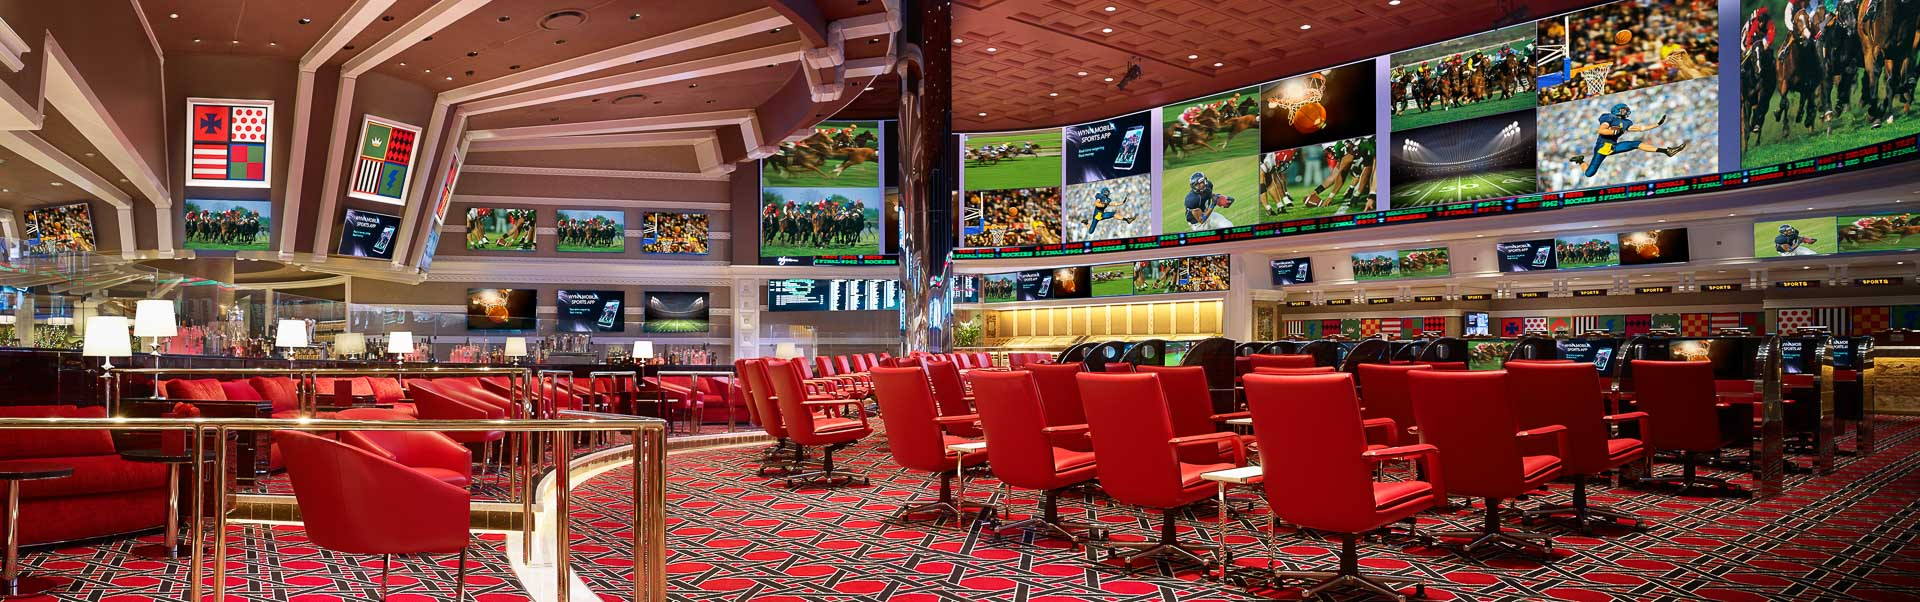 Wynn Las Vegas closes race and sports book and poker room due to coronavirus